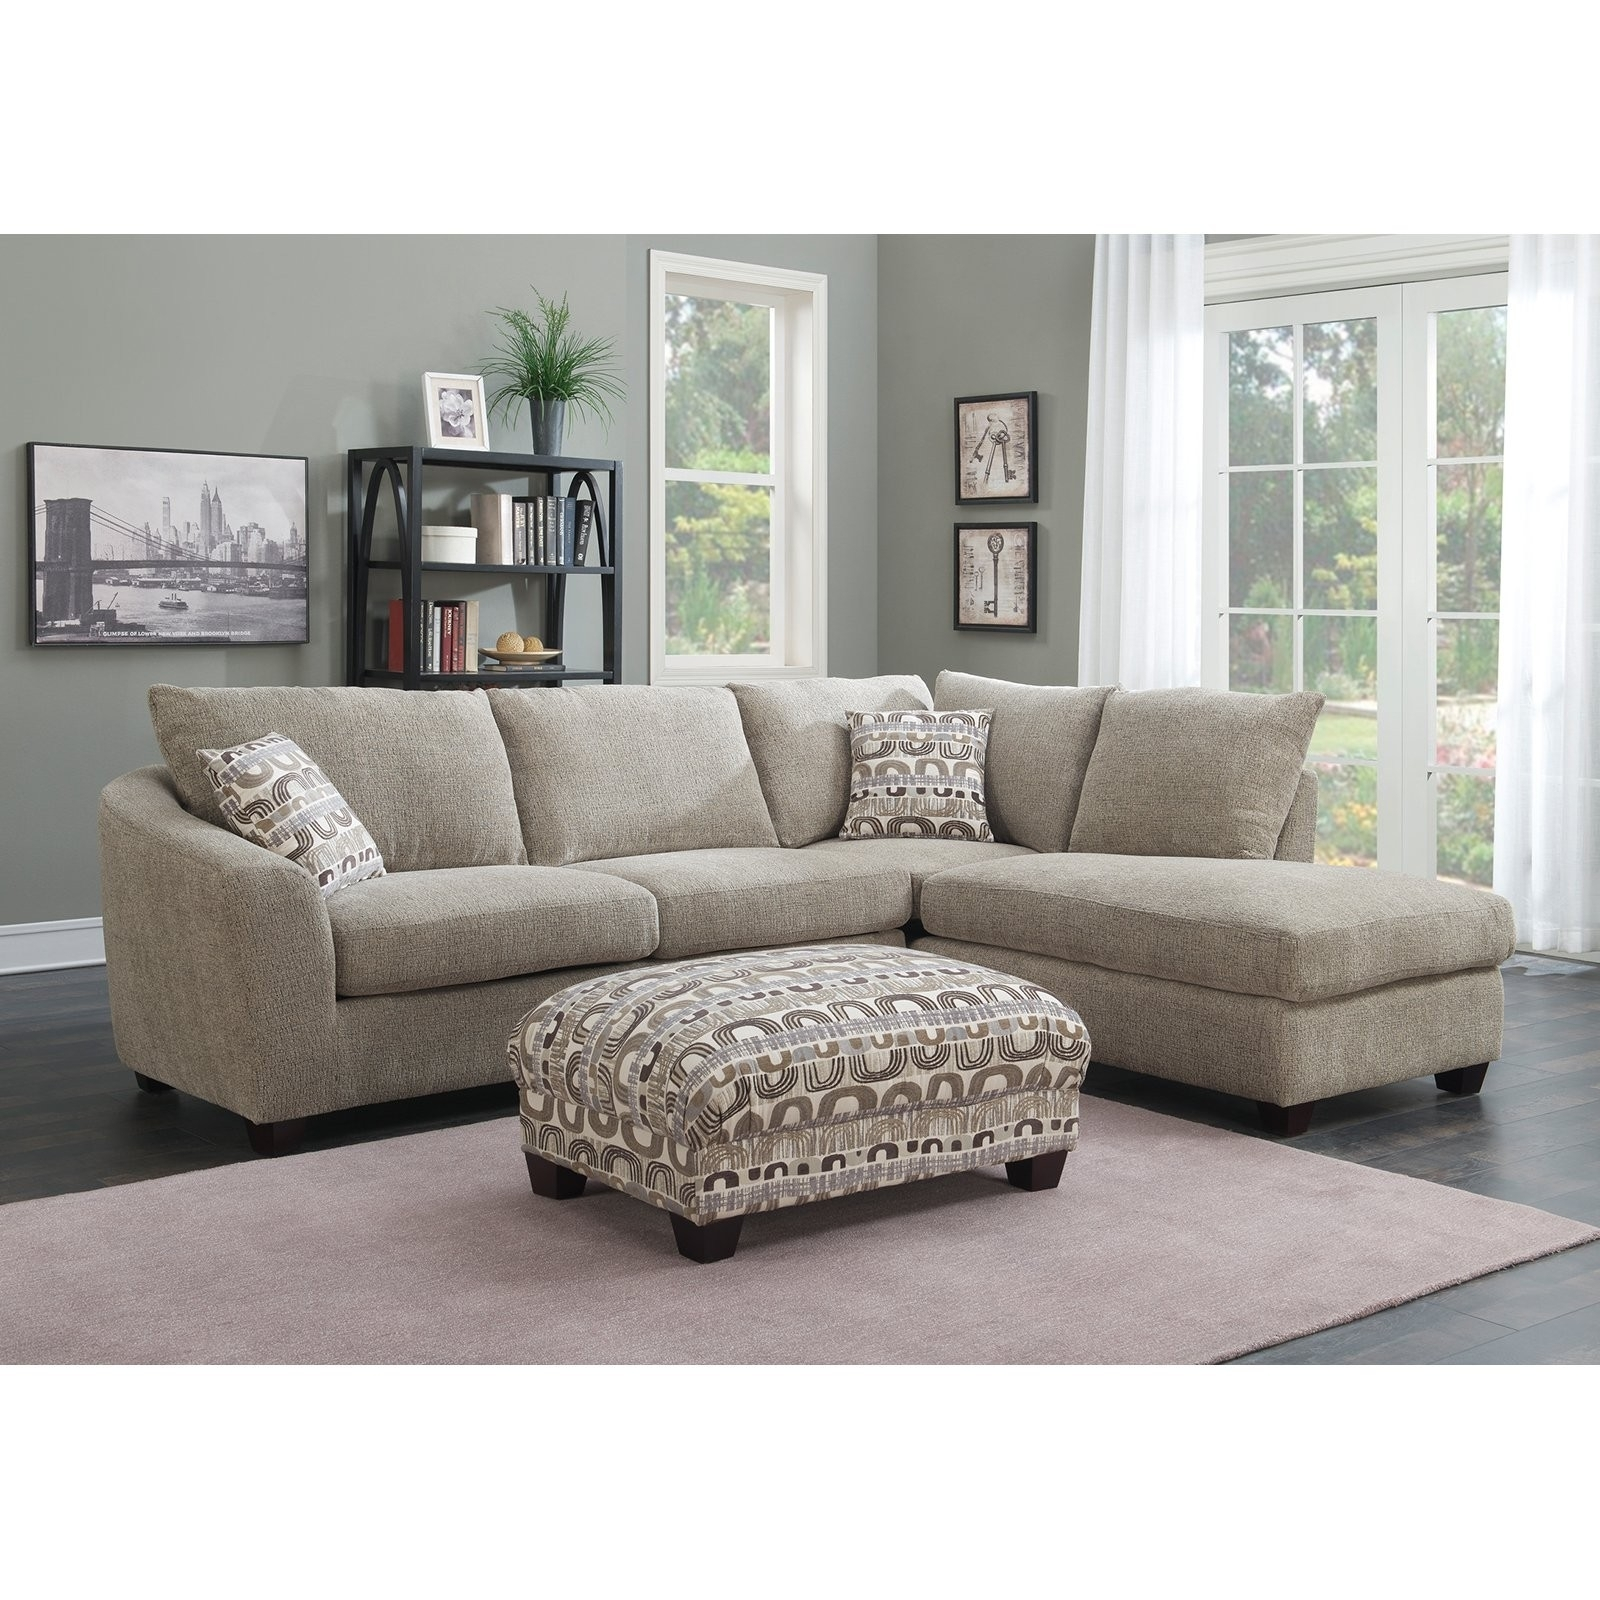 2 Piece Sectional With Chaise Urban Small West Elm C Regarding Avery 2 Piece Sectionals With Laf Armless Chaise (Photo 20 of 30)